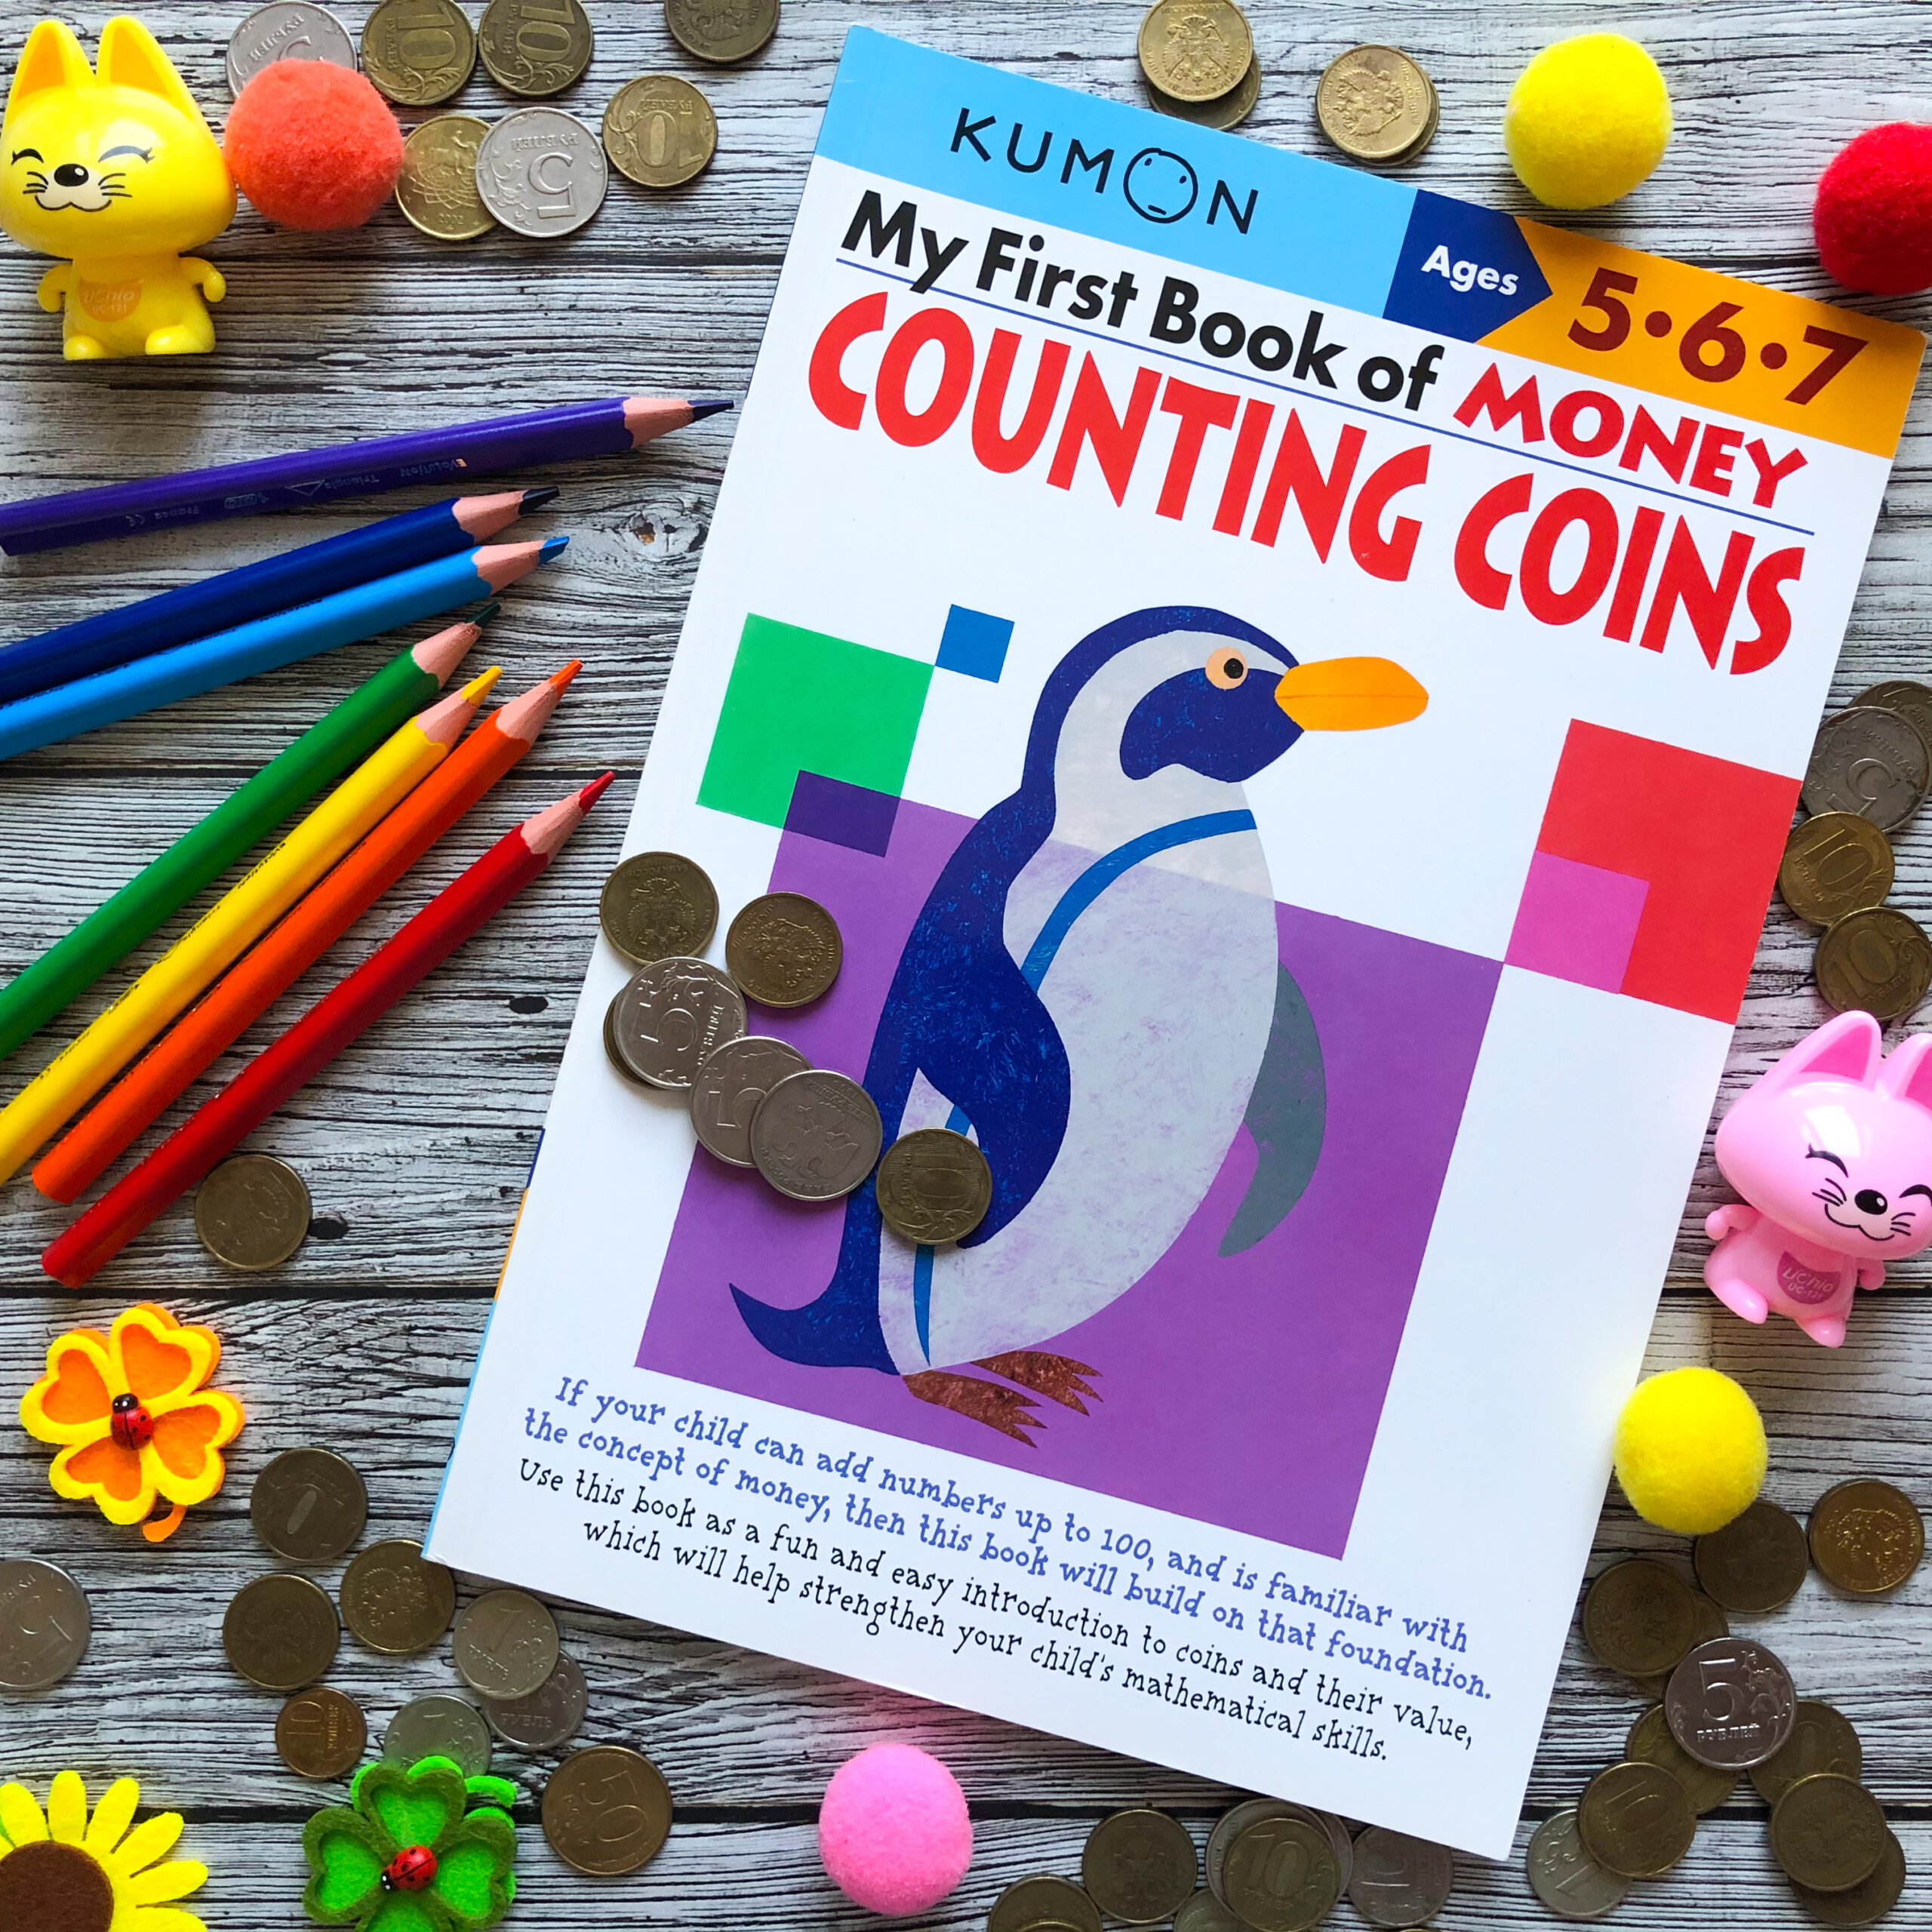 My First Book Of Money: Counting Coins, 5-7